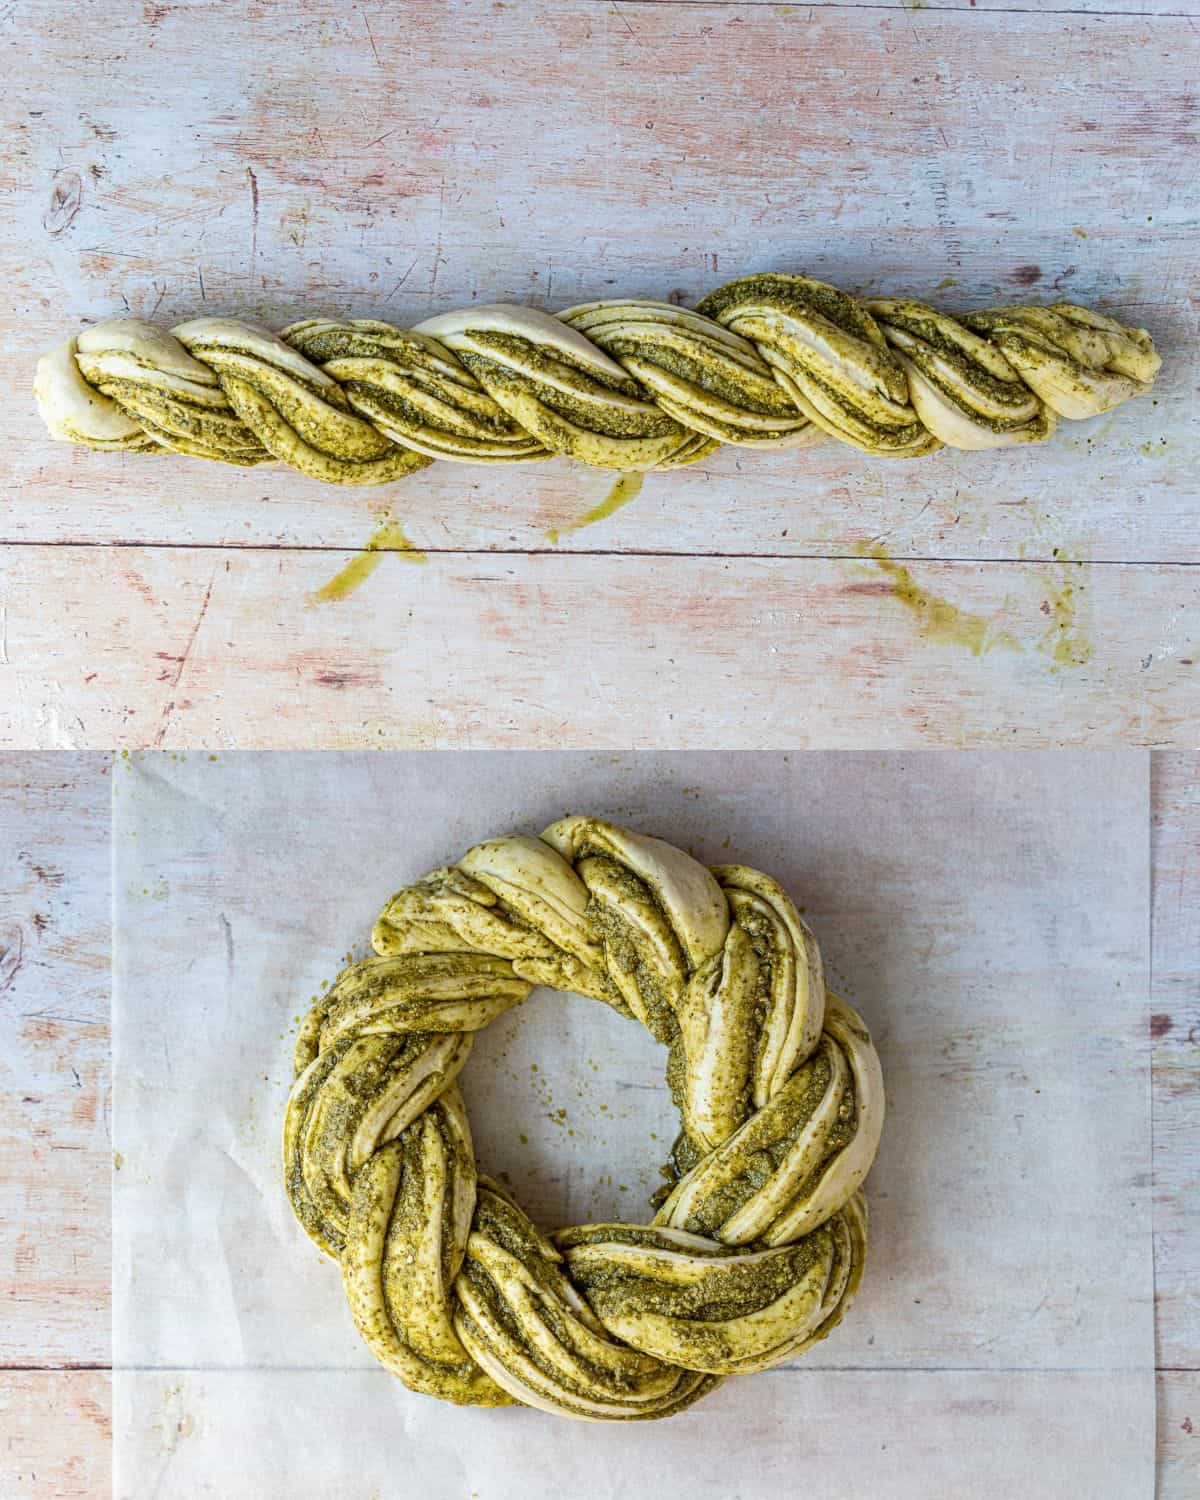 Step 4 - a two image collage of twisting the two halves of dough together and shaping it into a wreath.